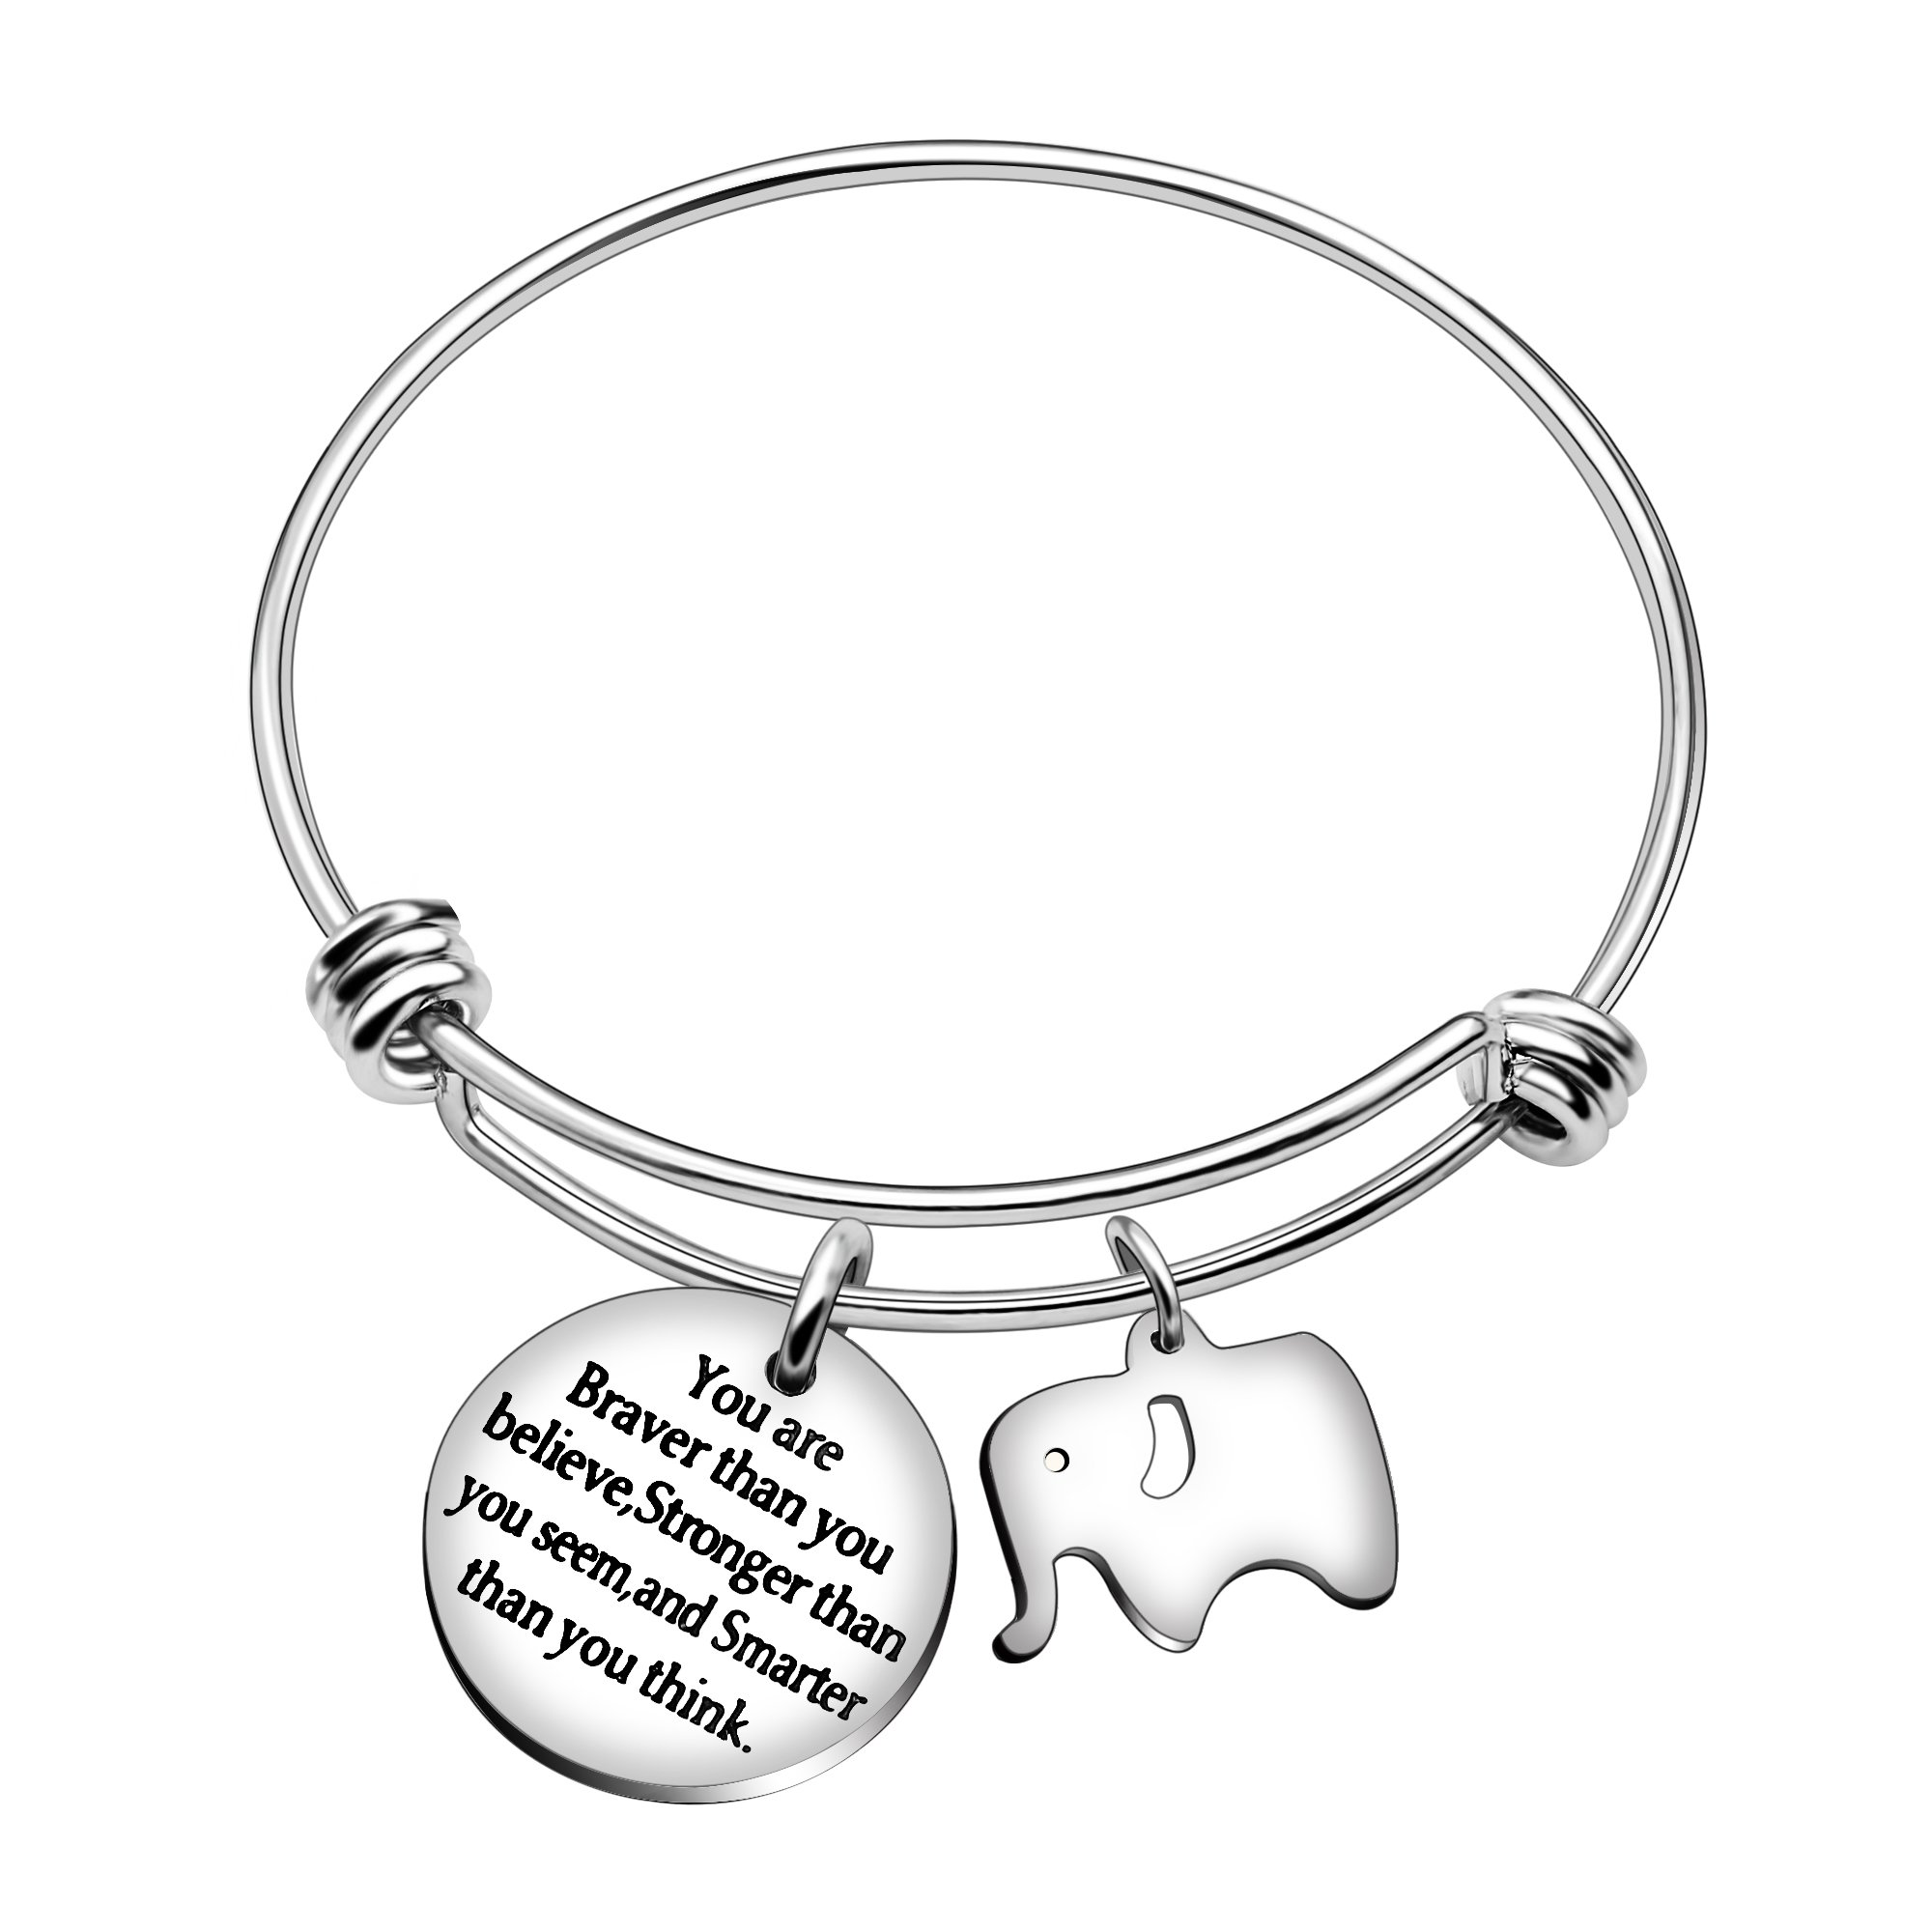 Best Friend Bangle Bracelets Family Gift You're braver stronger smarter than you think (Stainless Steel Elephant)